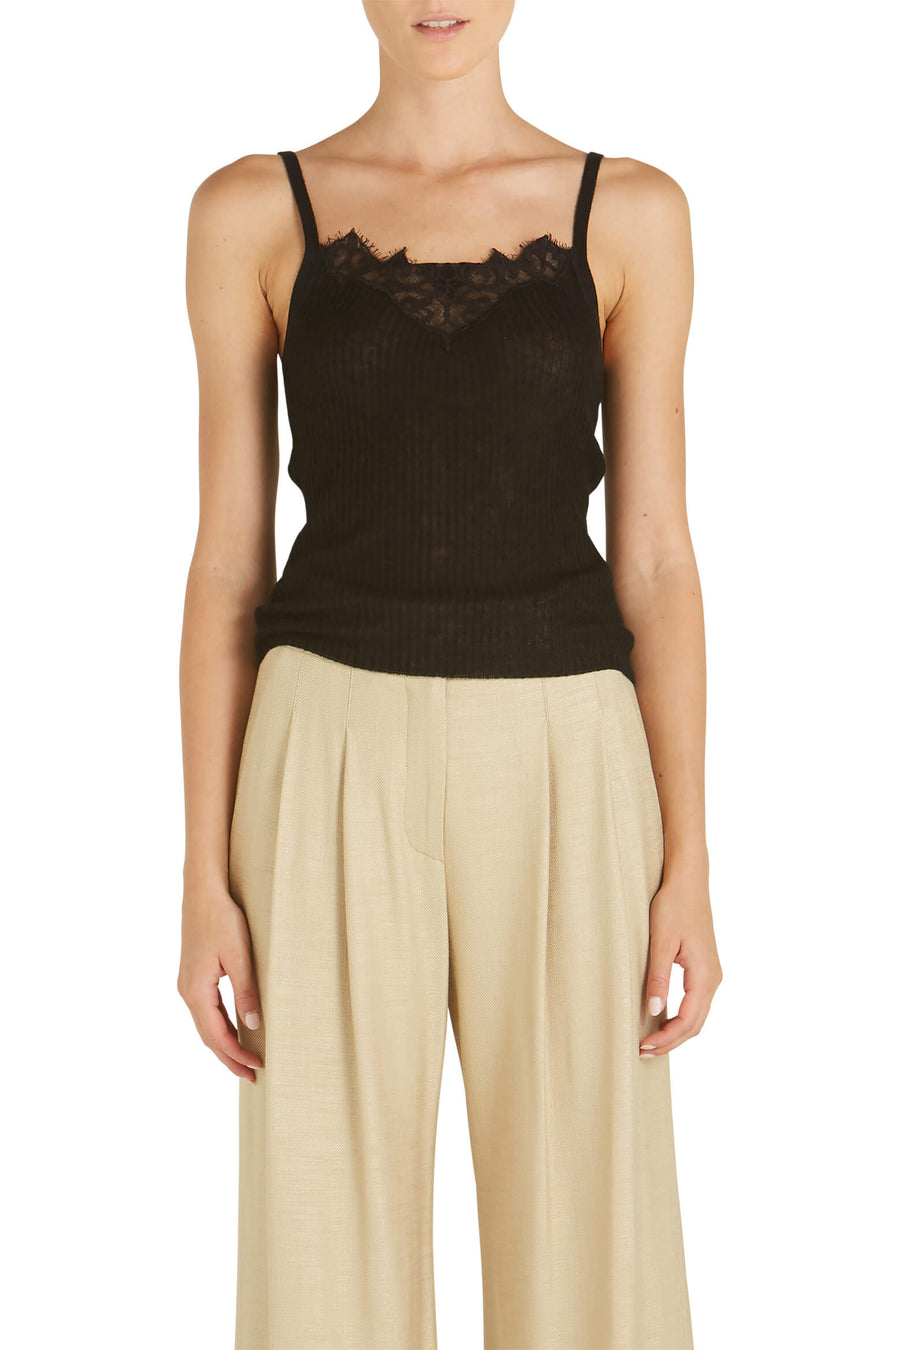 Rylee Cashmere Lace Tank by Jonathan Simkhai from The New Trend